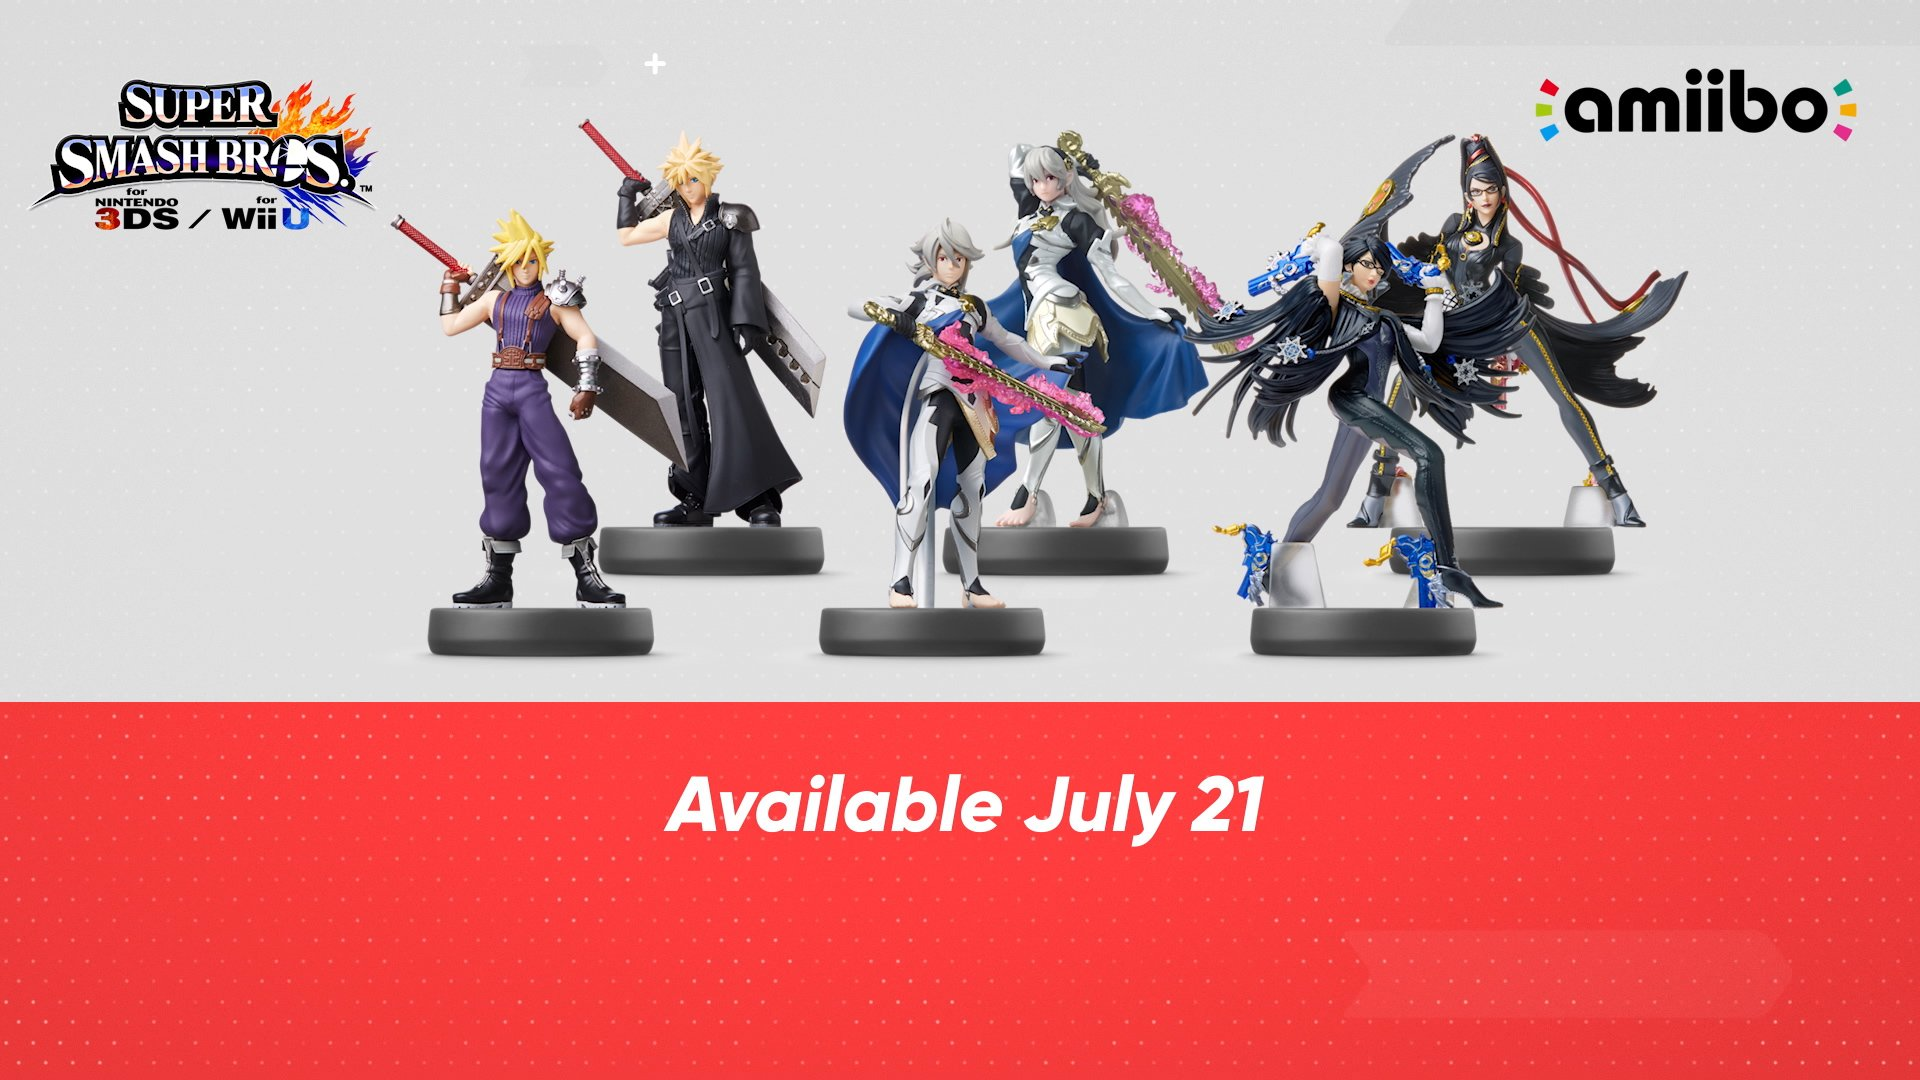 More Zelda and Smash Bros Amiibo on the way